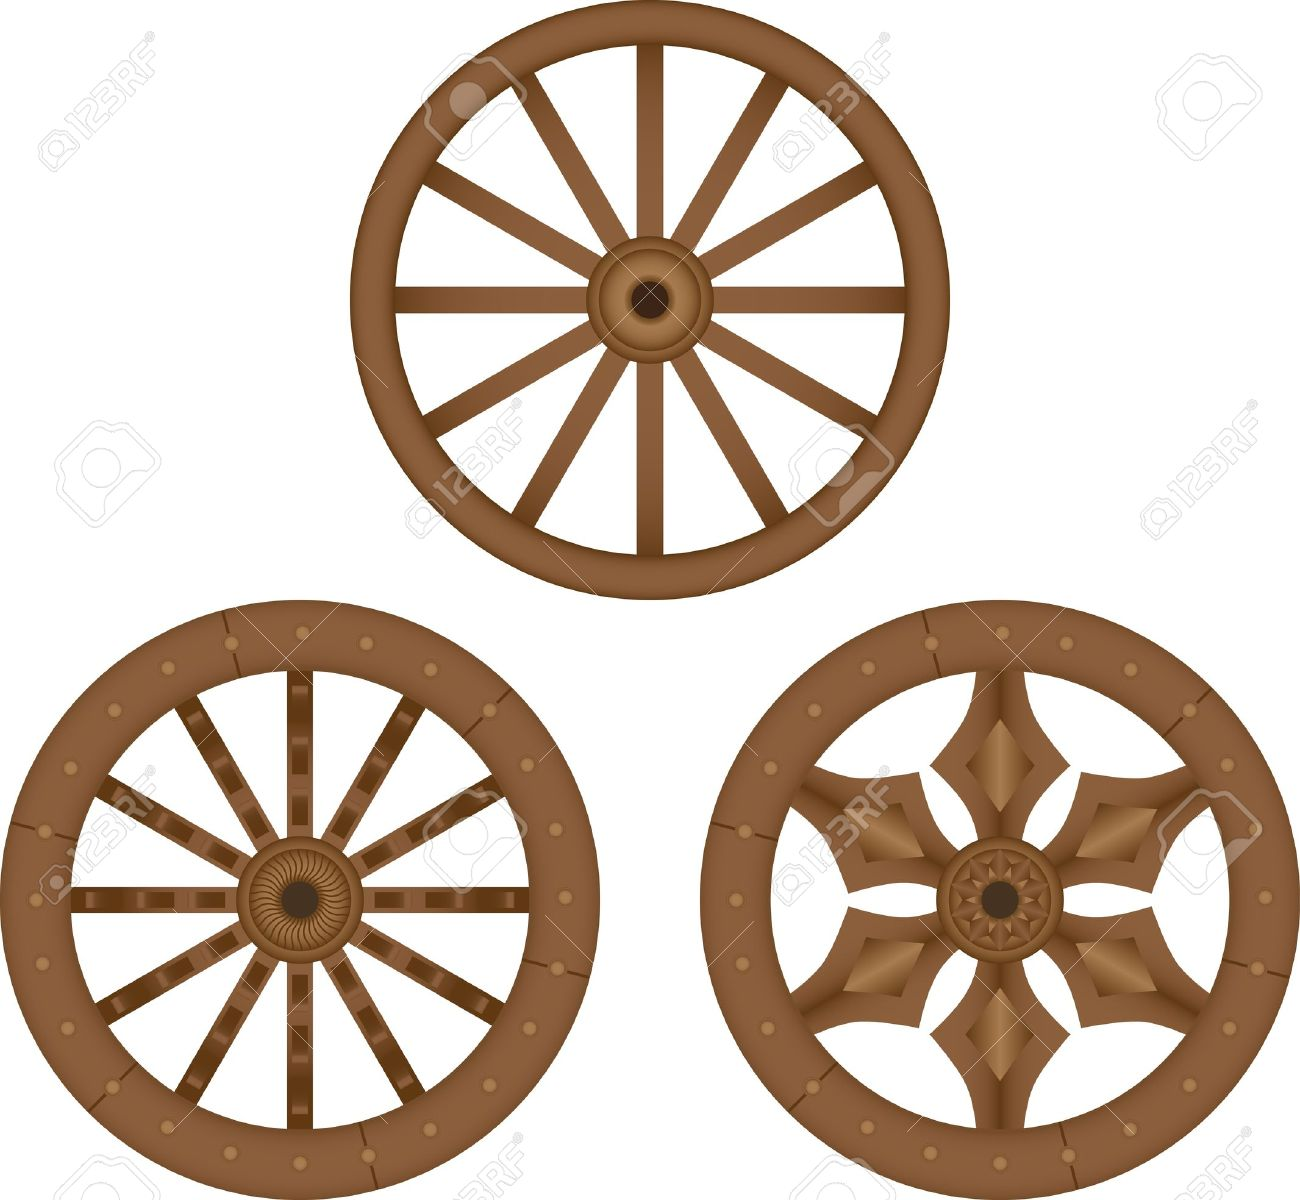 Old Wooden Wheels Royalty Free Cliparts, Vectors, And Stock.